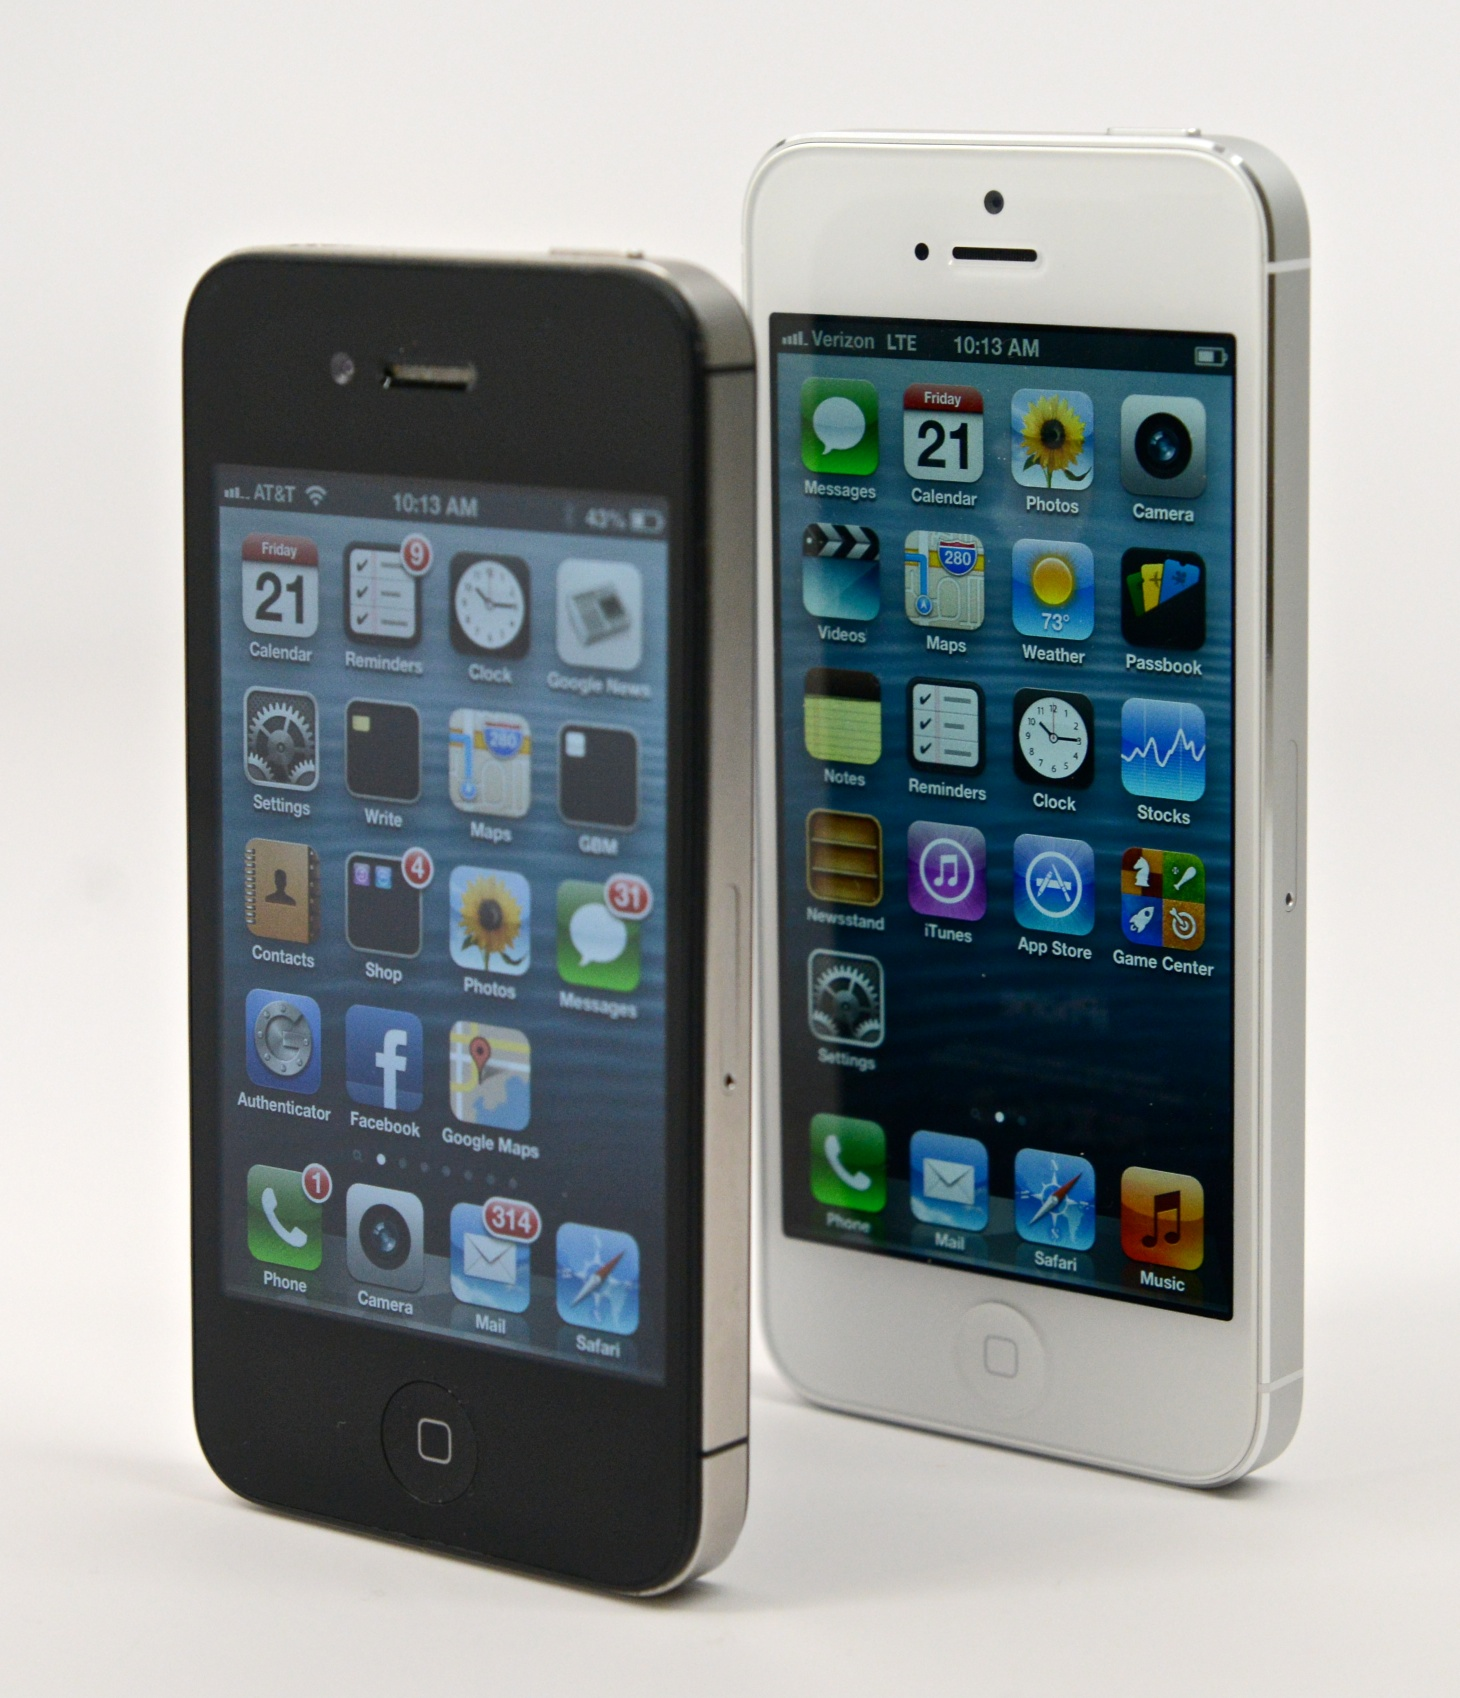 Should I Buy Iphone From Apple Or Verizon